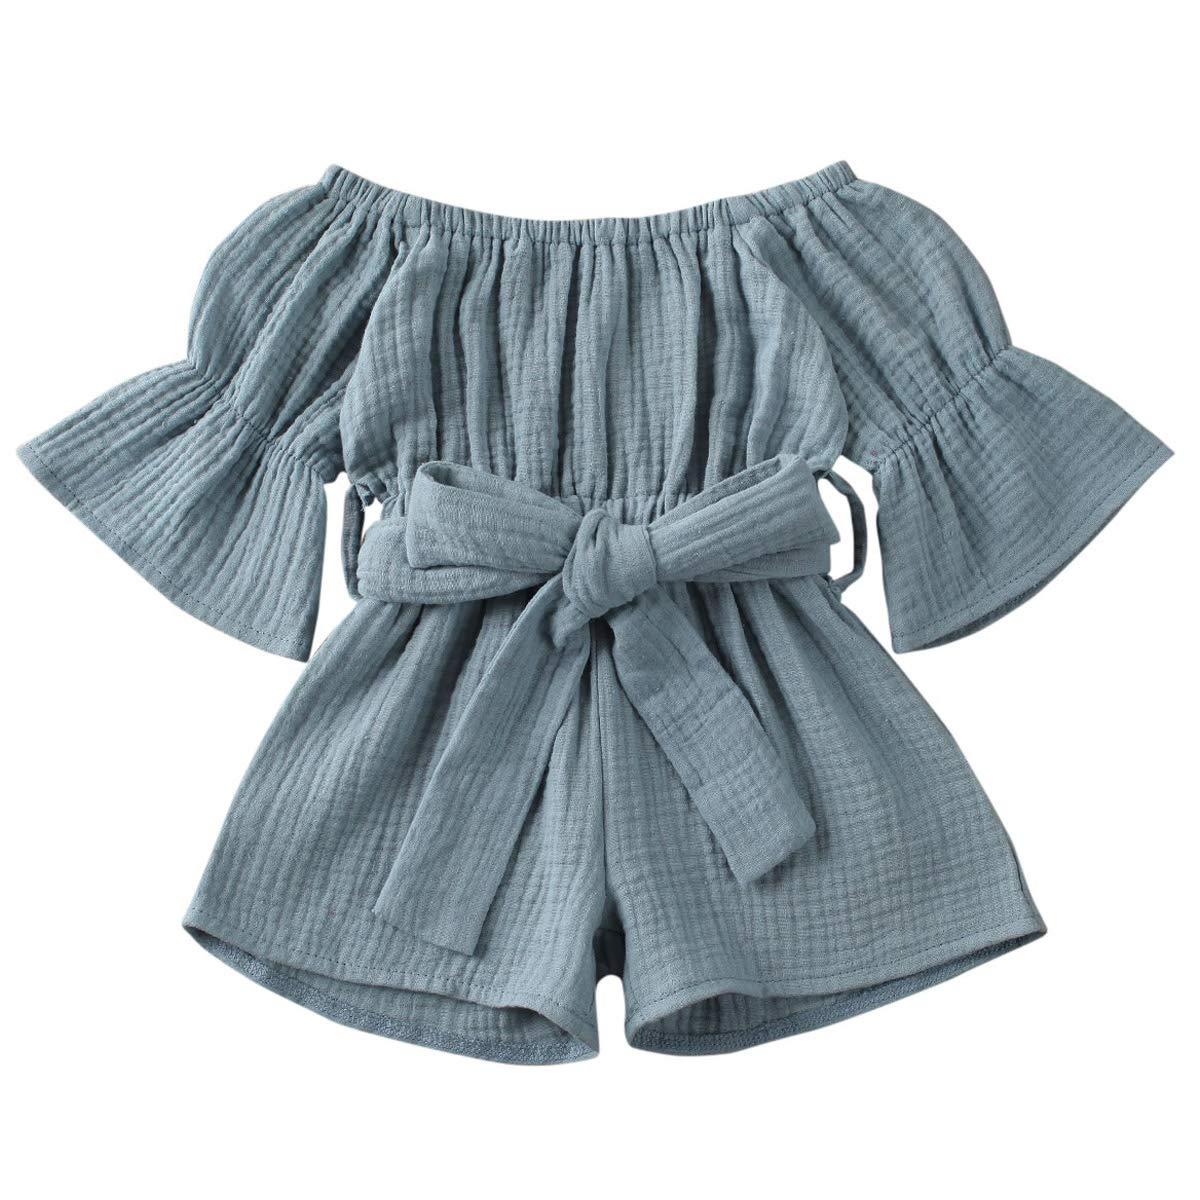 JBEELATE Toddler Baby Girl Jumpsuit Cotton Linen Summer Solid Romper Outfits Flare Sleeve Off Shoulder Clothes One Piece